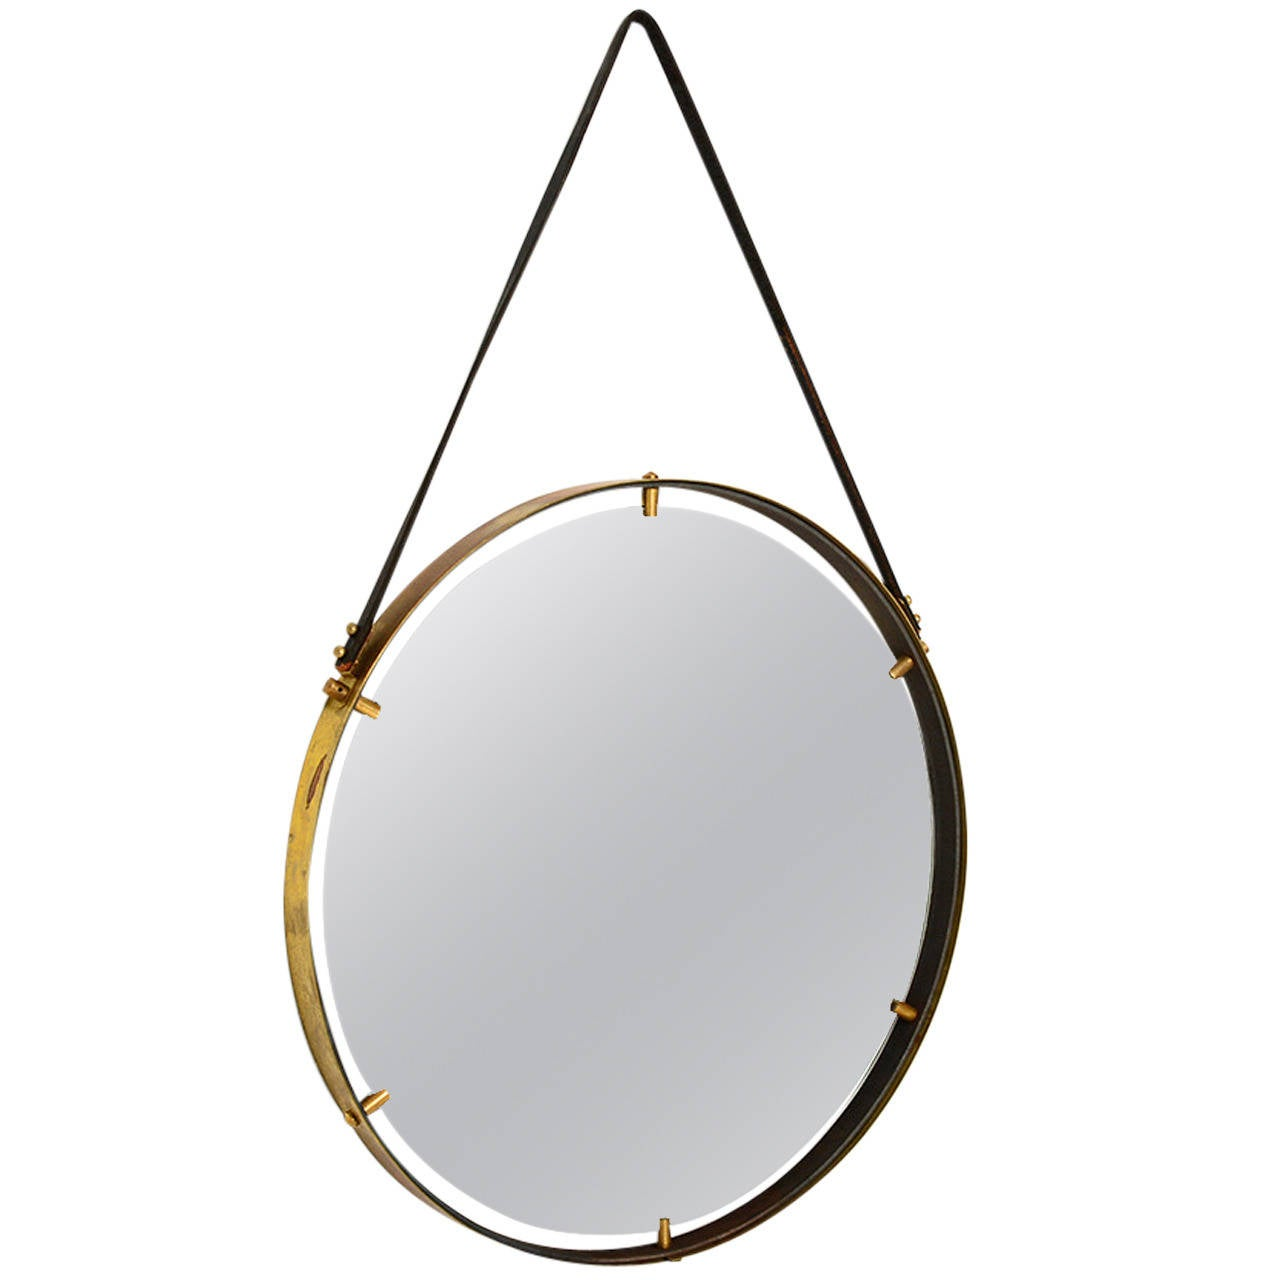 Brass wall hanging mirror ambianic for sale at 1stdibs for Hanging mirror